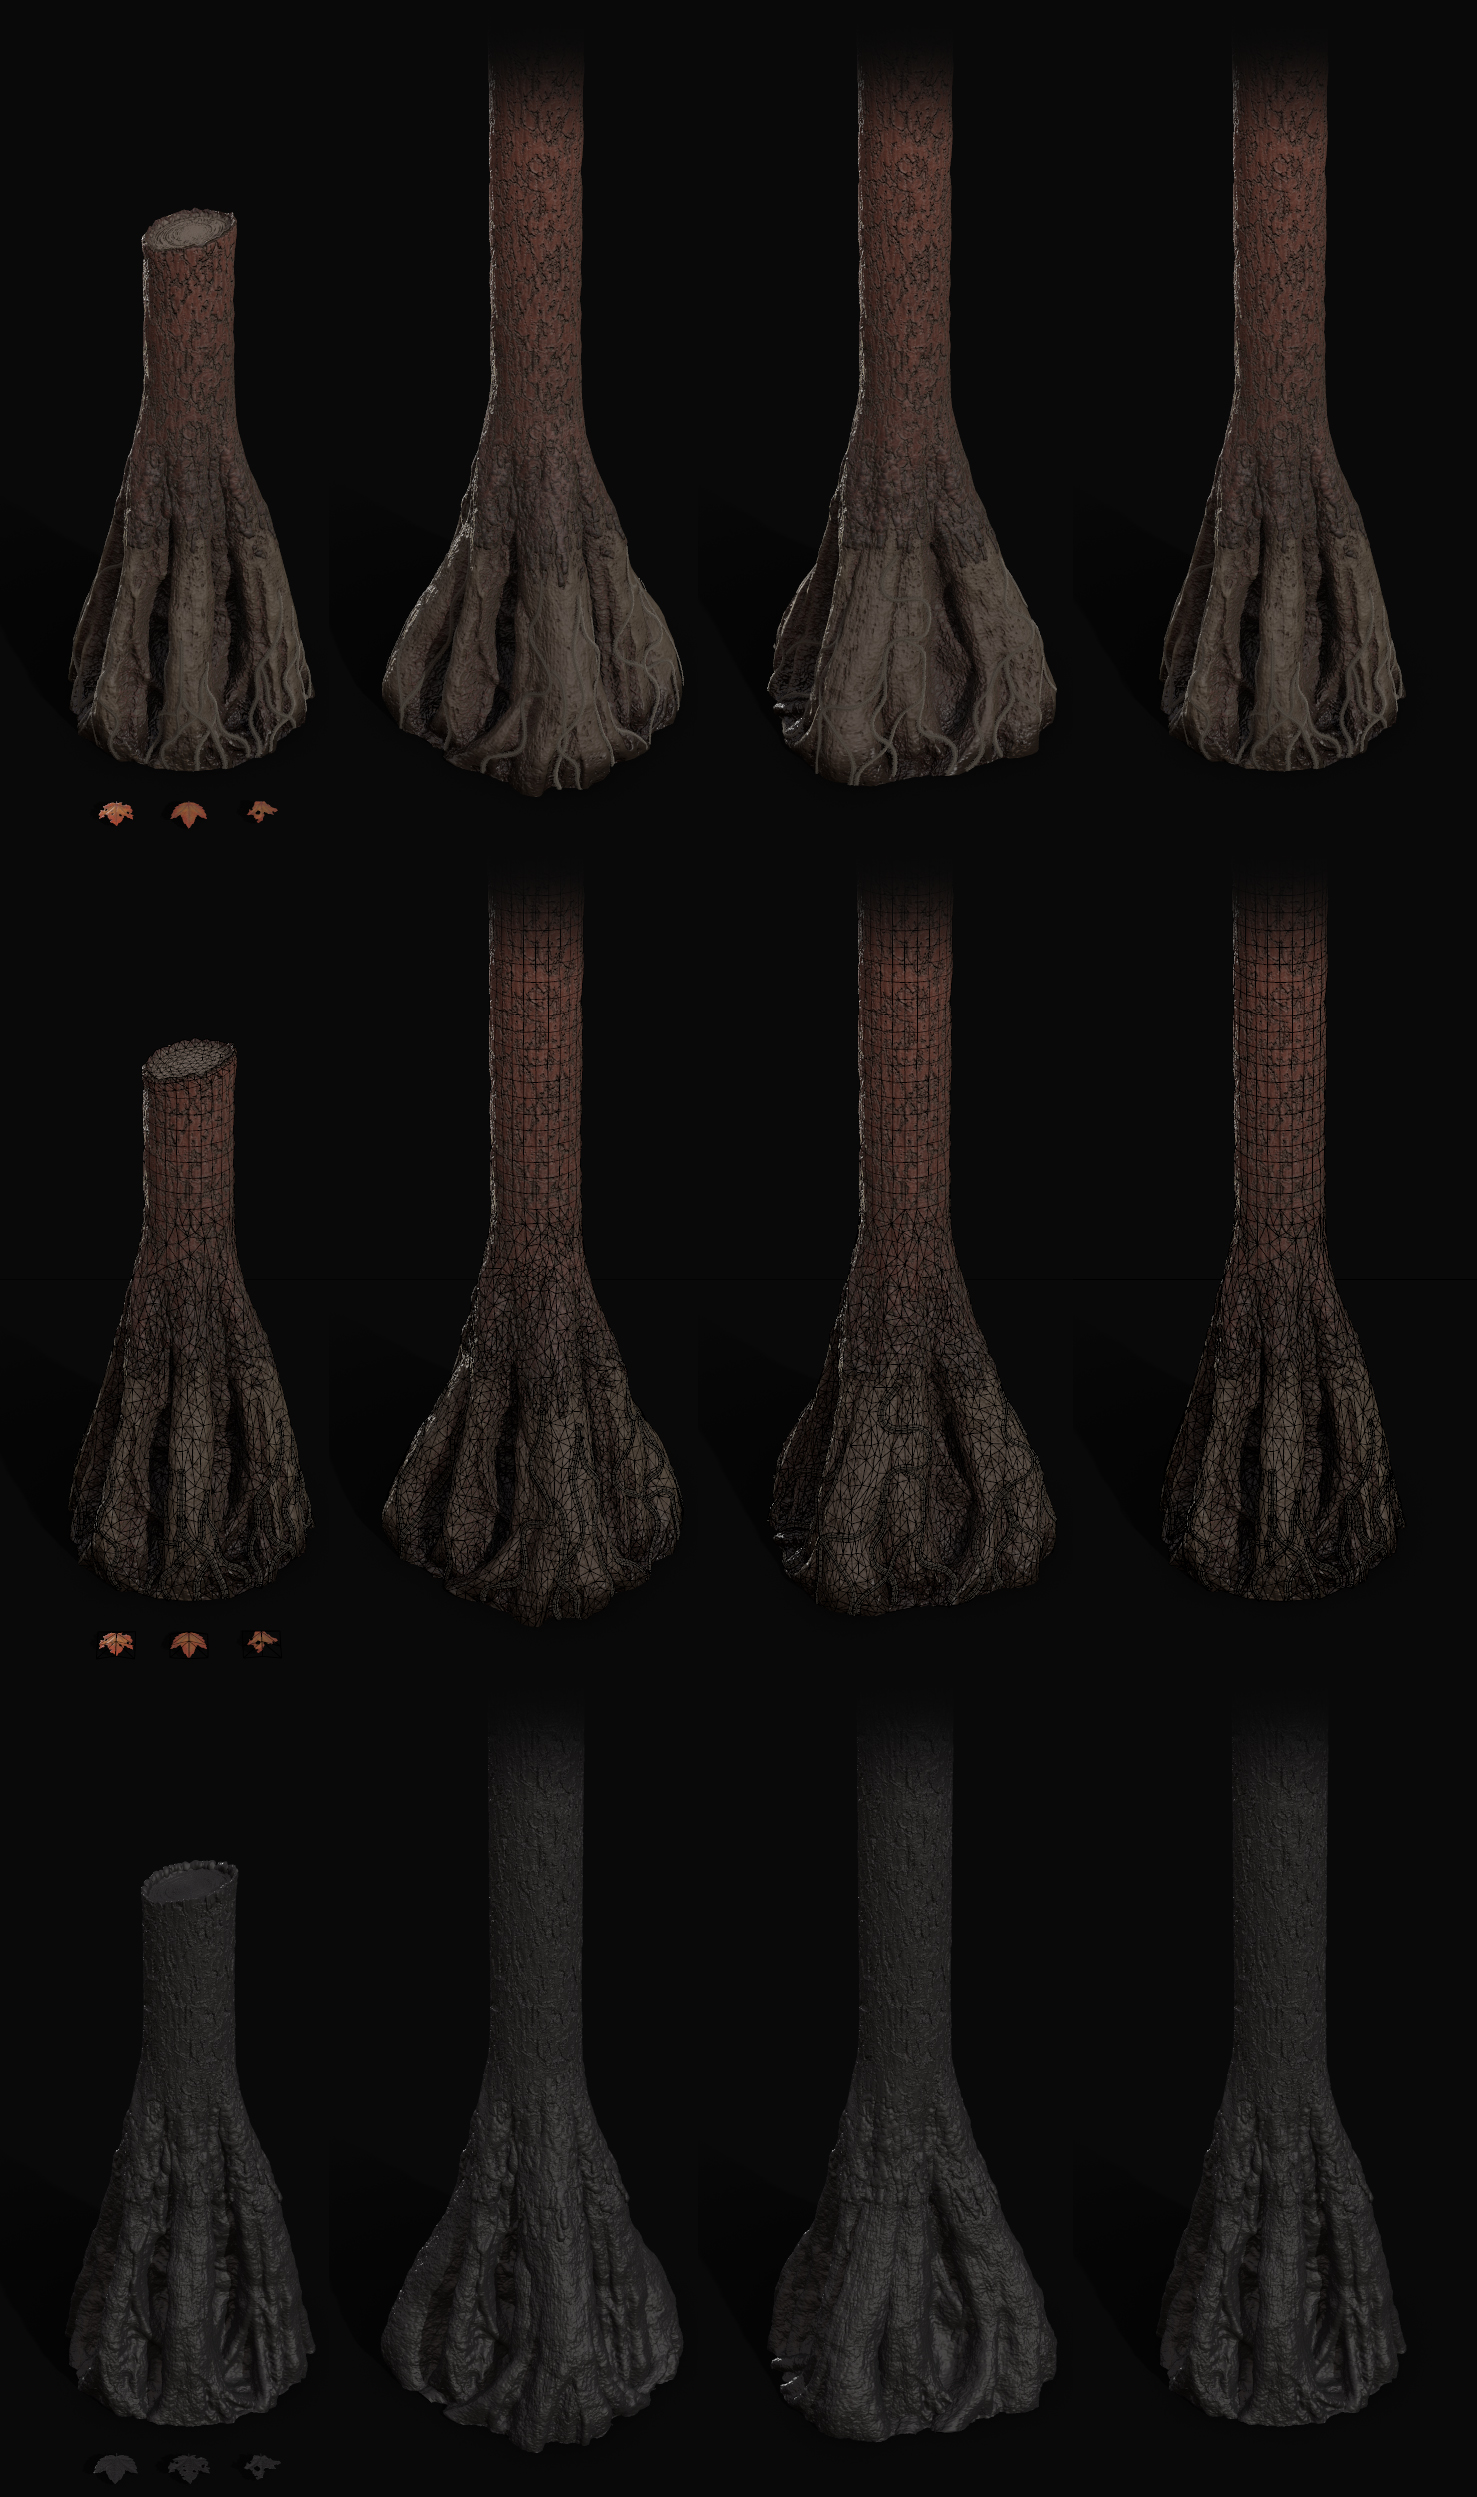 Trees were created in a modular fashion, the trunk is shared between each tree while the roots are bespoke. Textured in substance and high poly created in Zbrush.